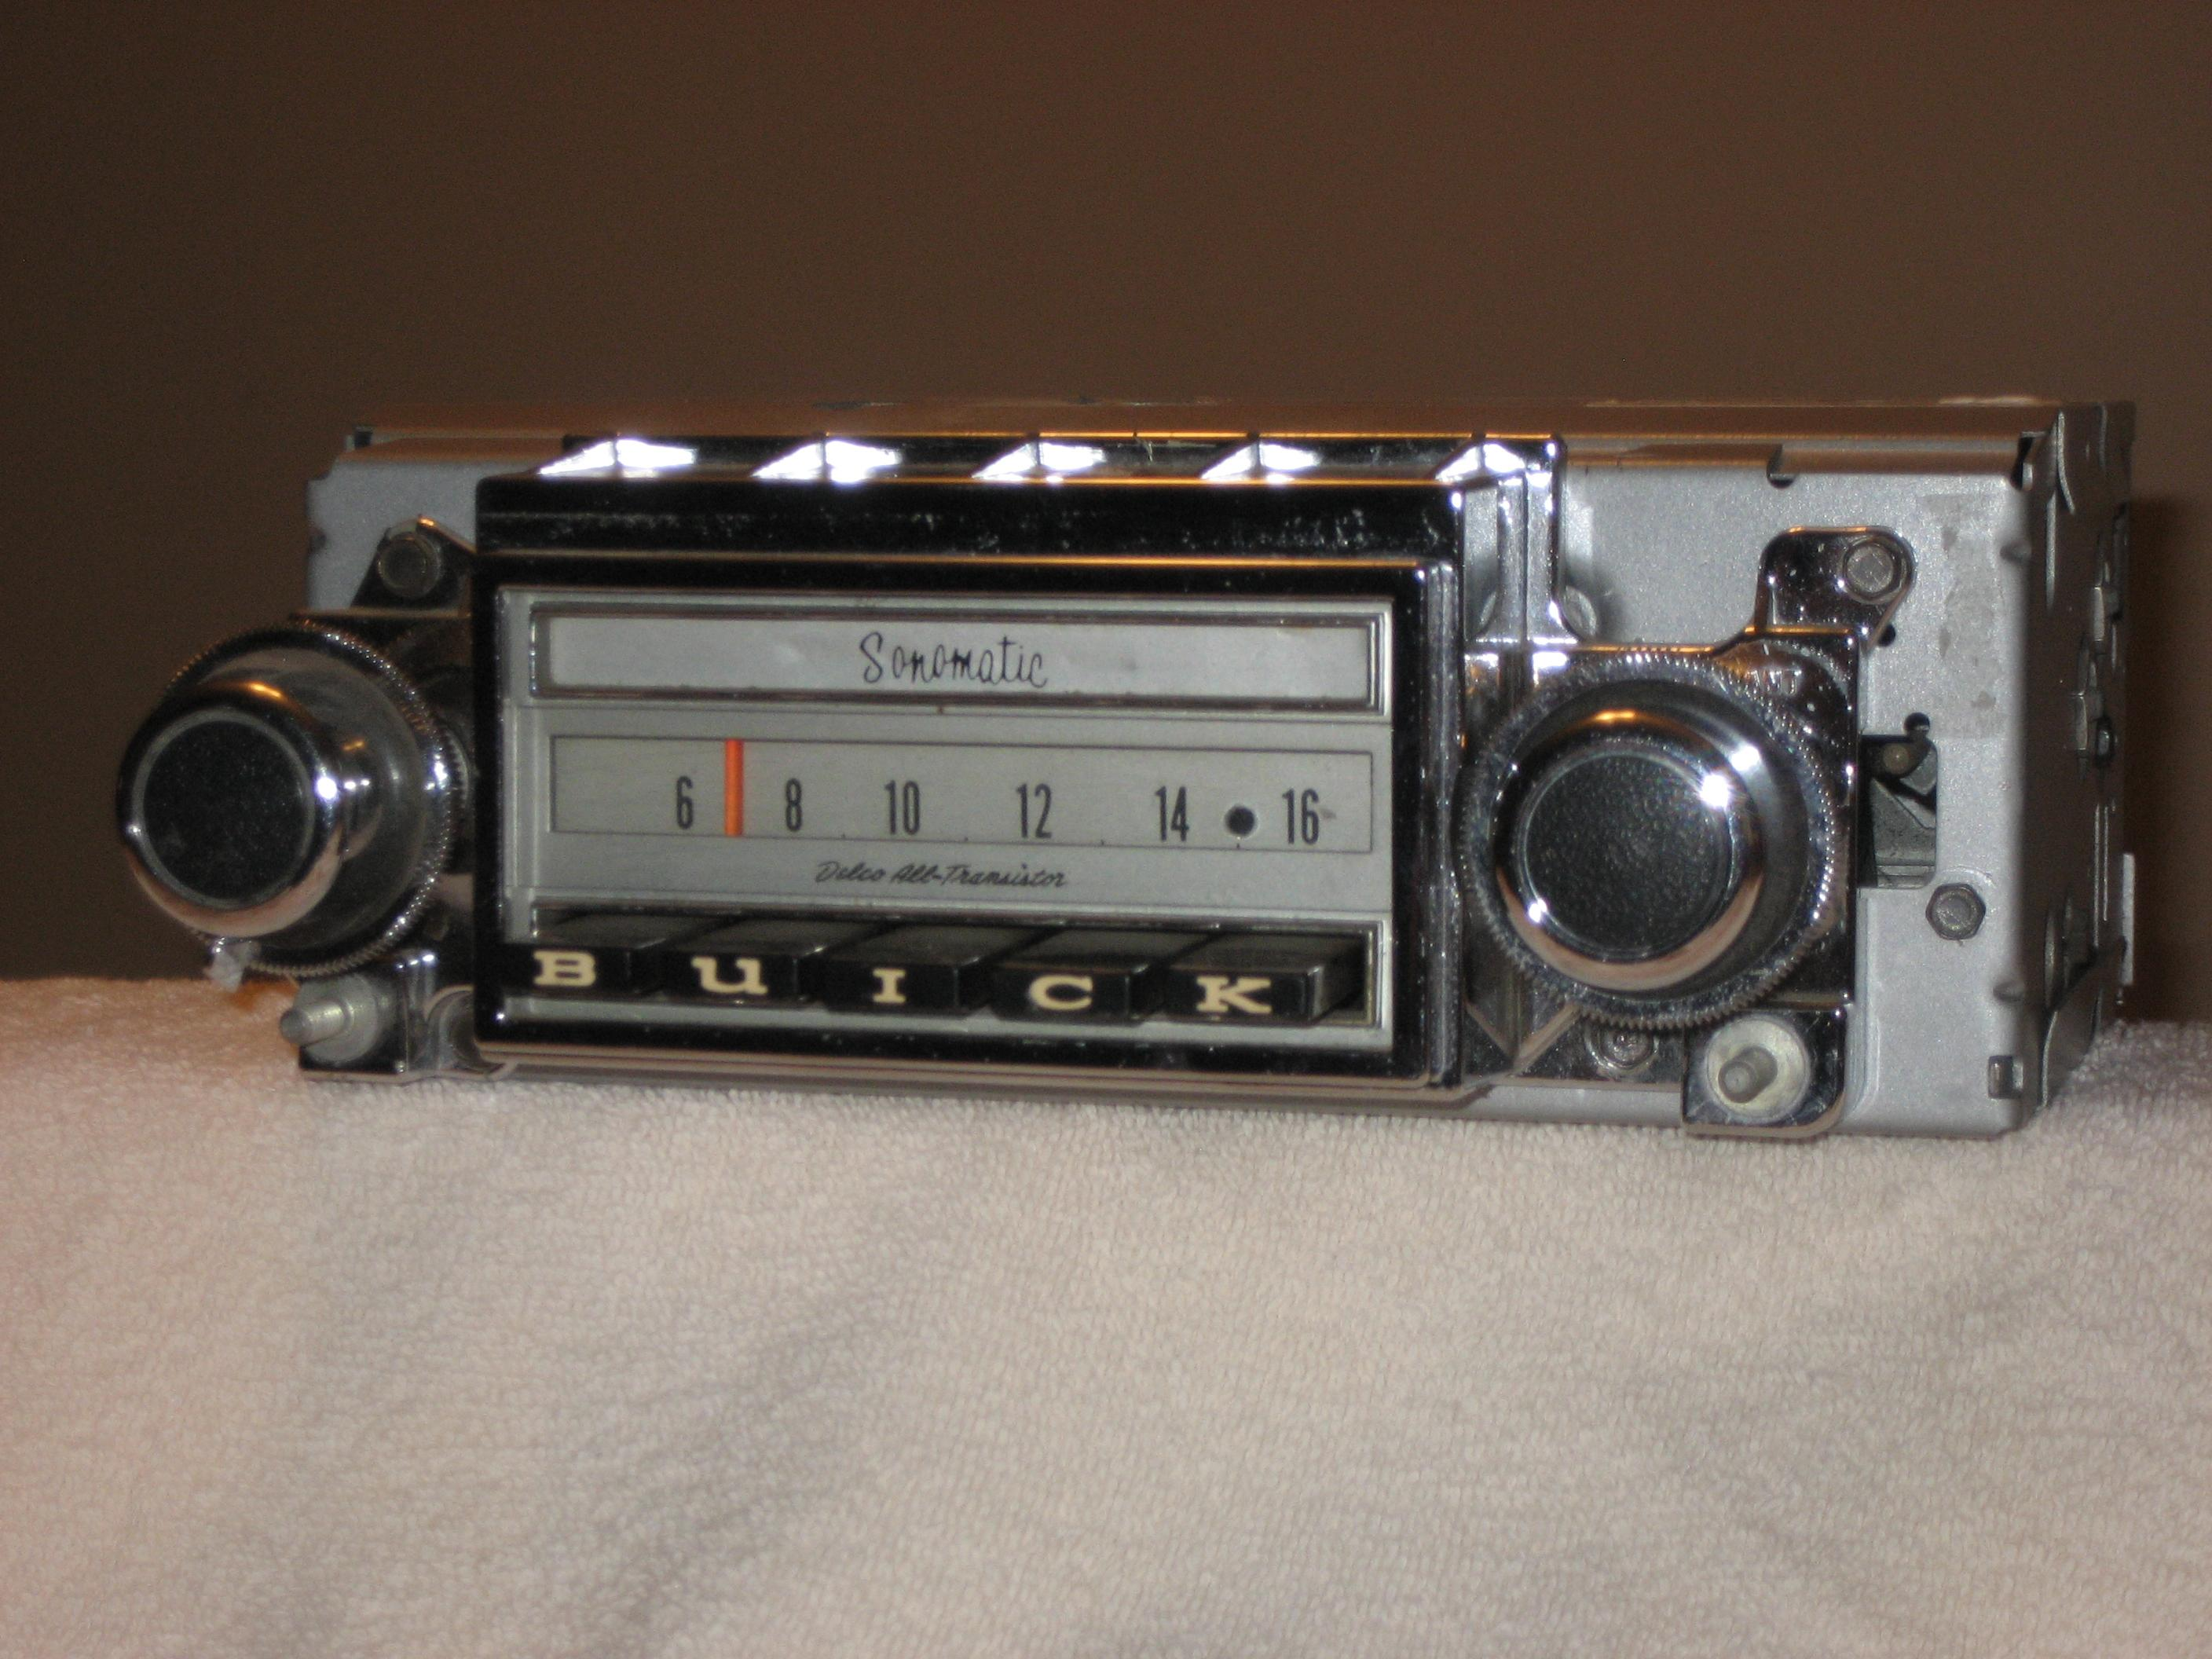 1968 BUICK SPECIAL AM-FM STEREO RADIO